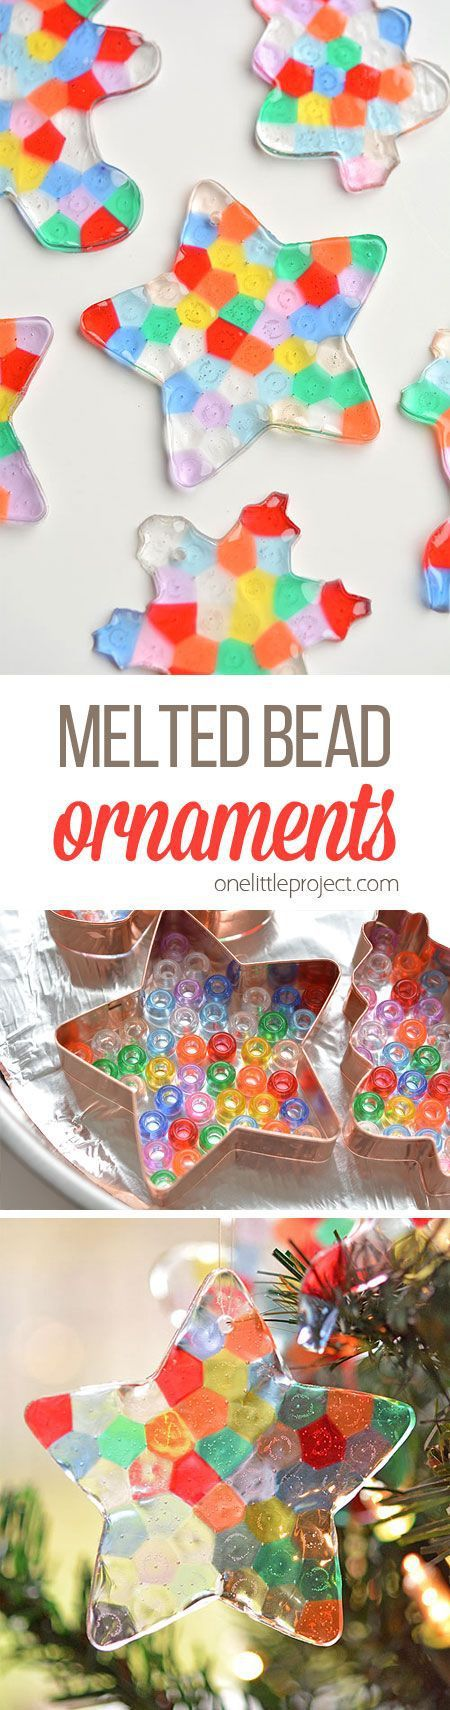 DIY Jewelry: These melted bead ornaments are SO BEAUTIFUL! And they're so easy to make wi